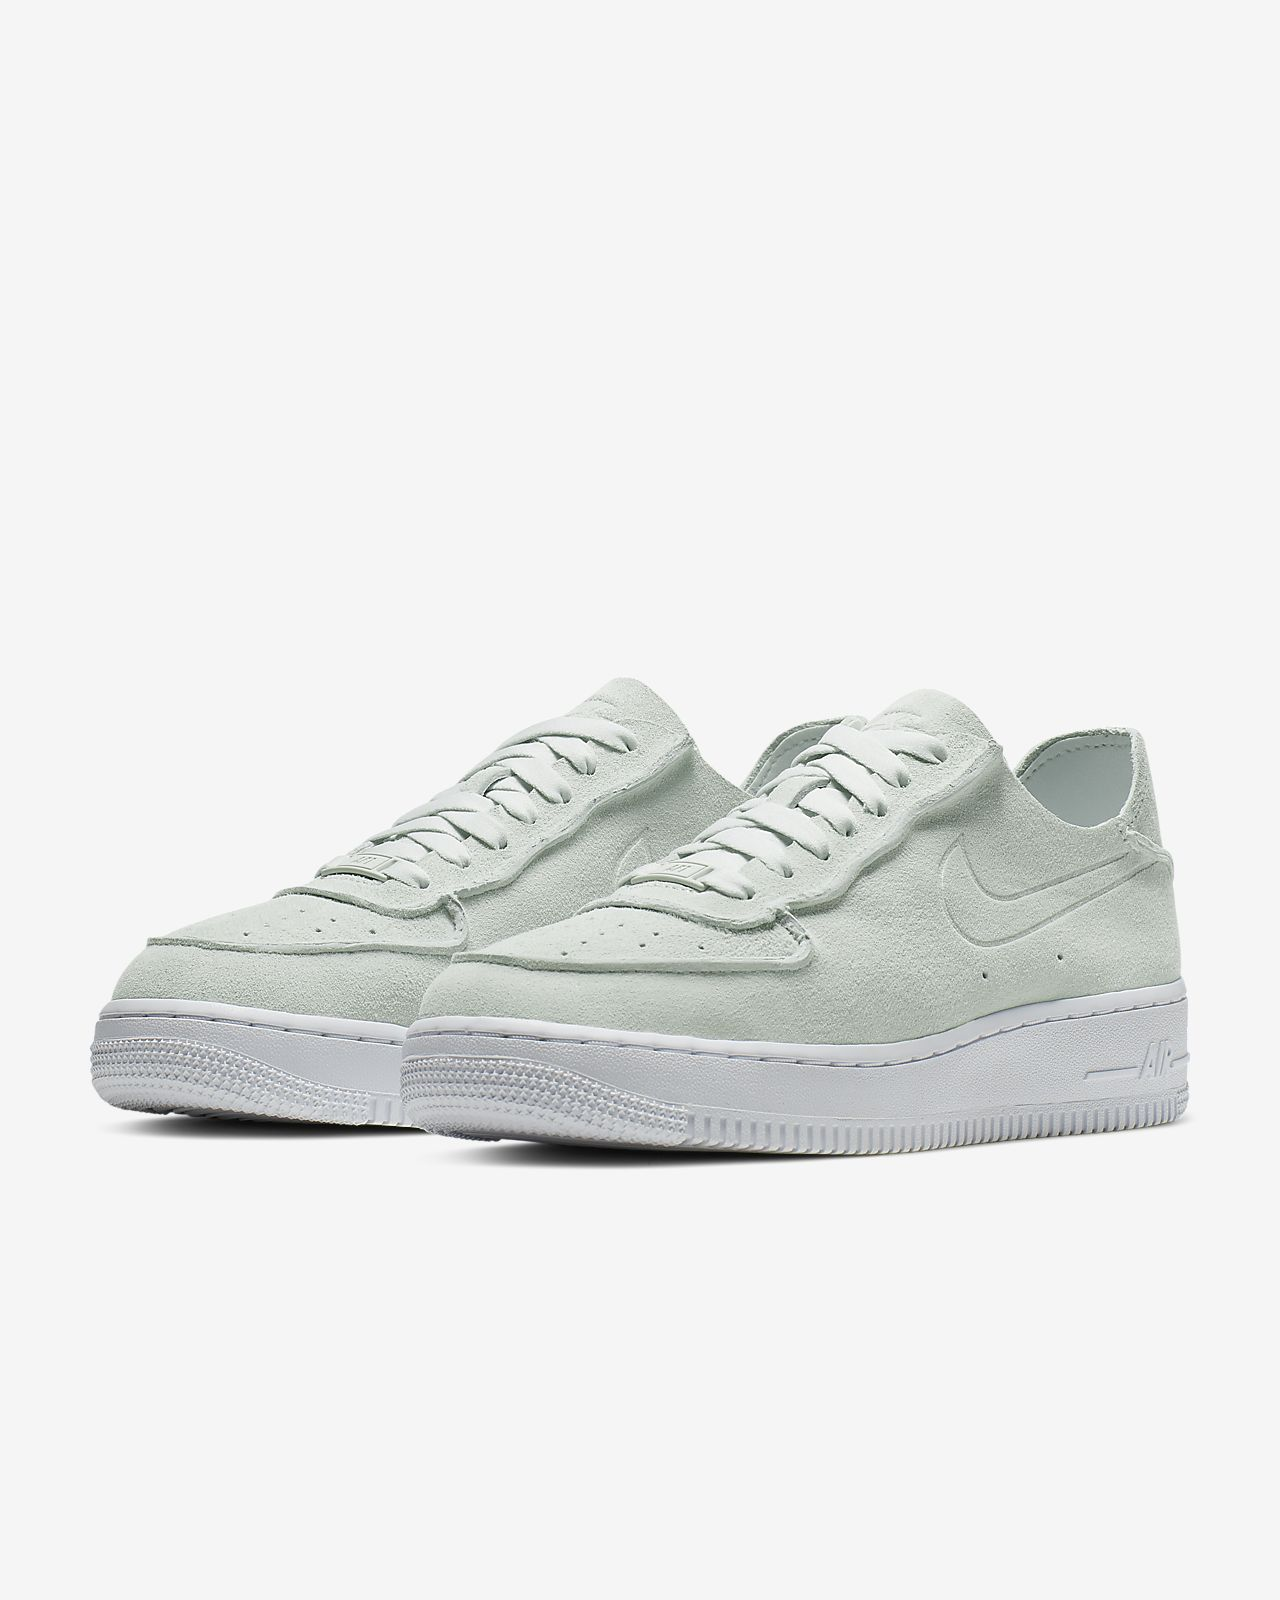 Nike Air Force 1 '07 Deconstructed Women's Shoe